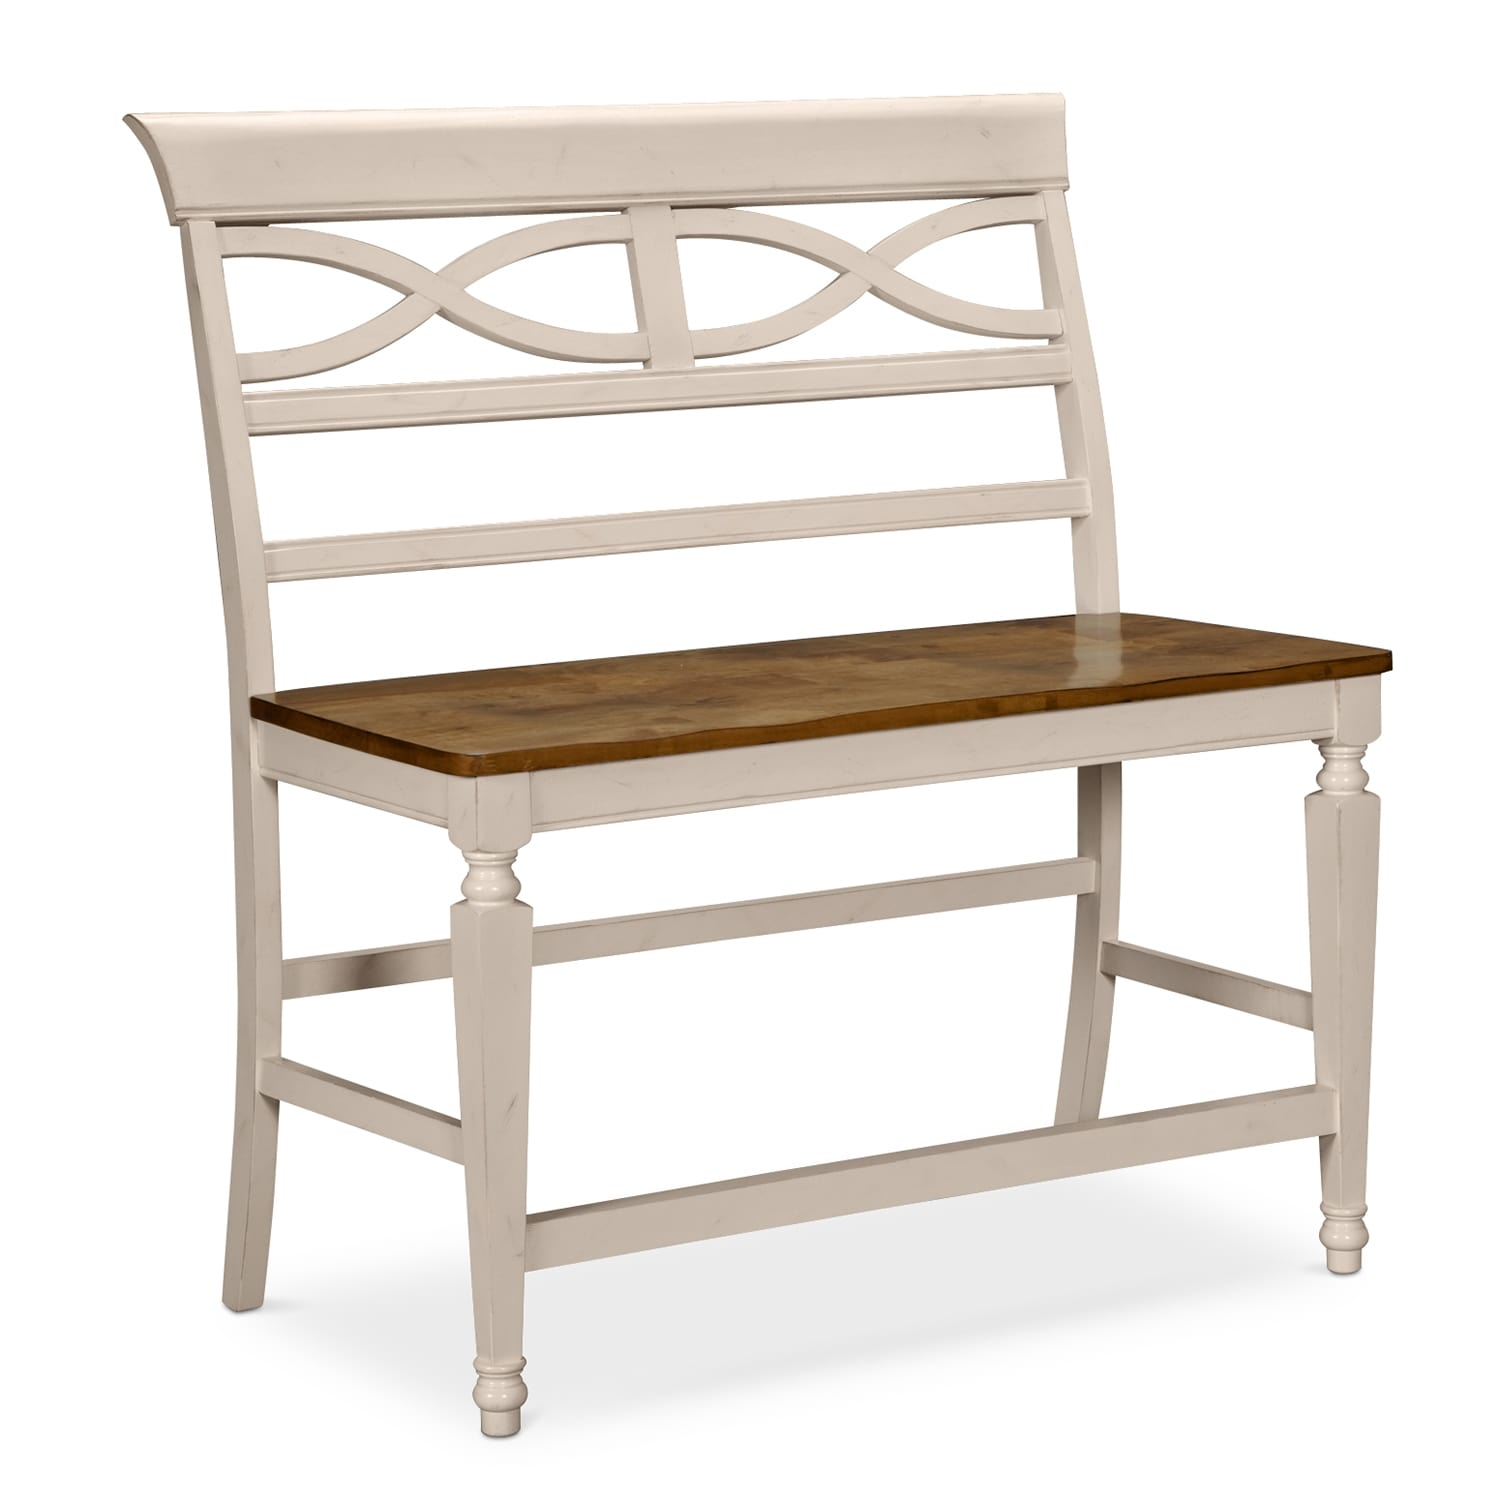 Value city furniture Counter height bench